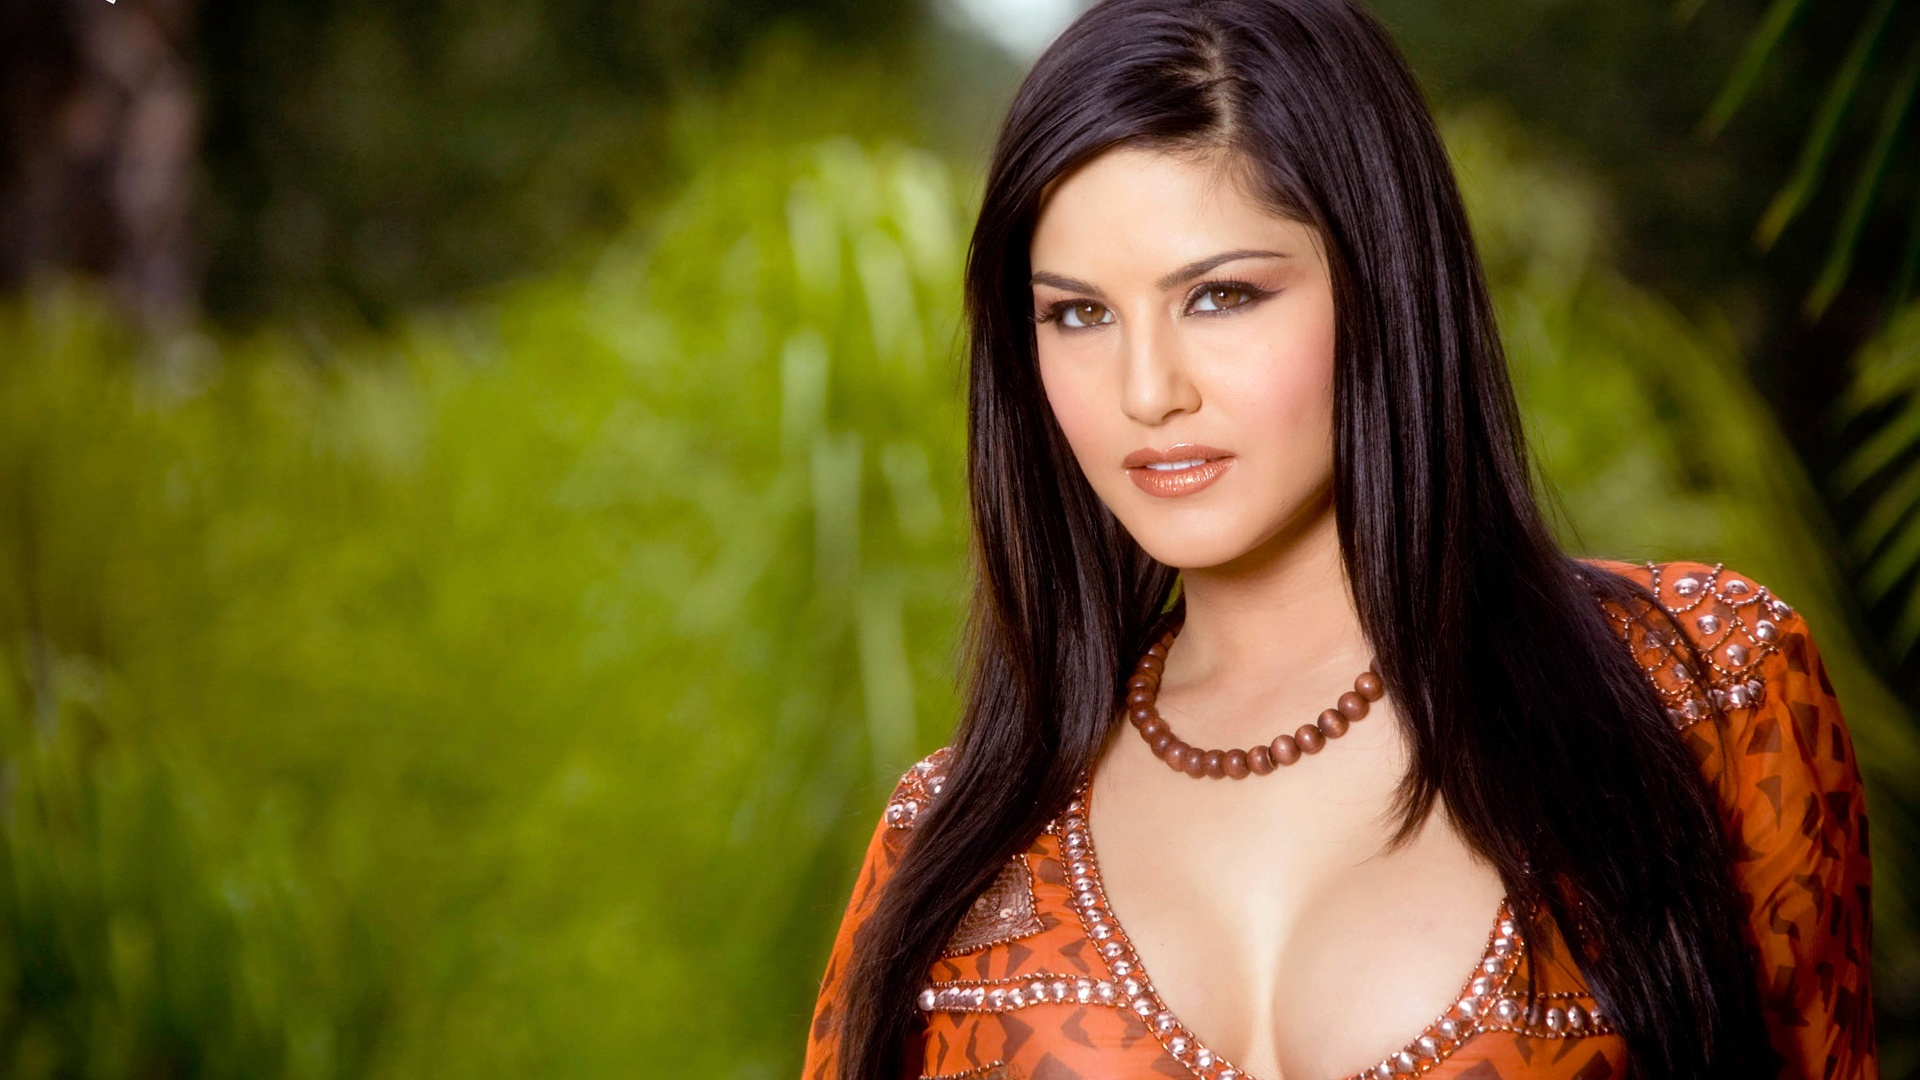 sunny leone wallpapers in jpg format for free download